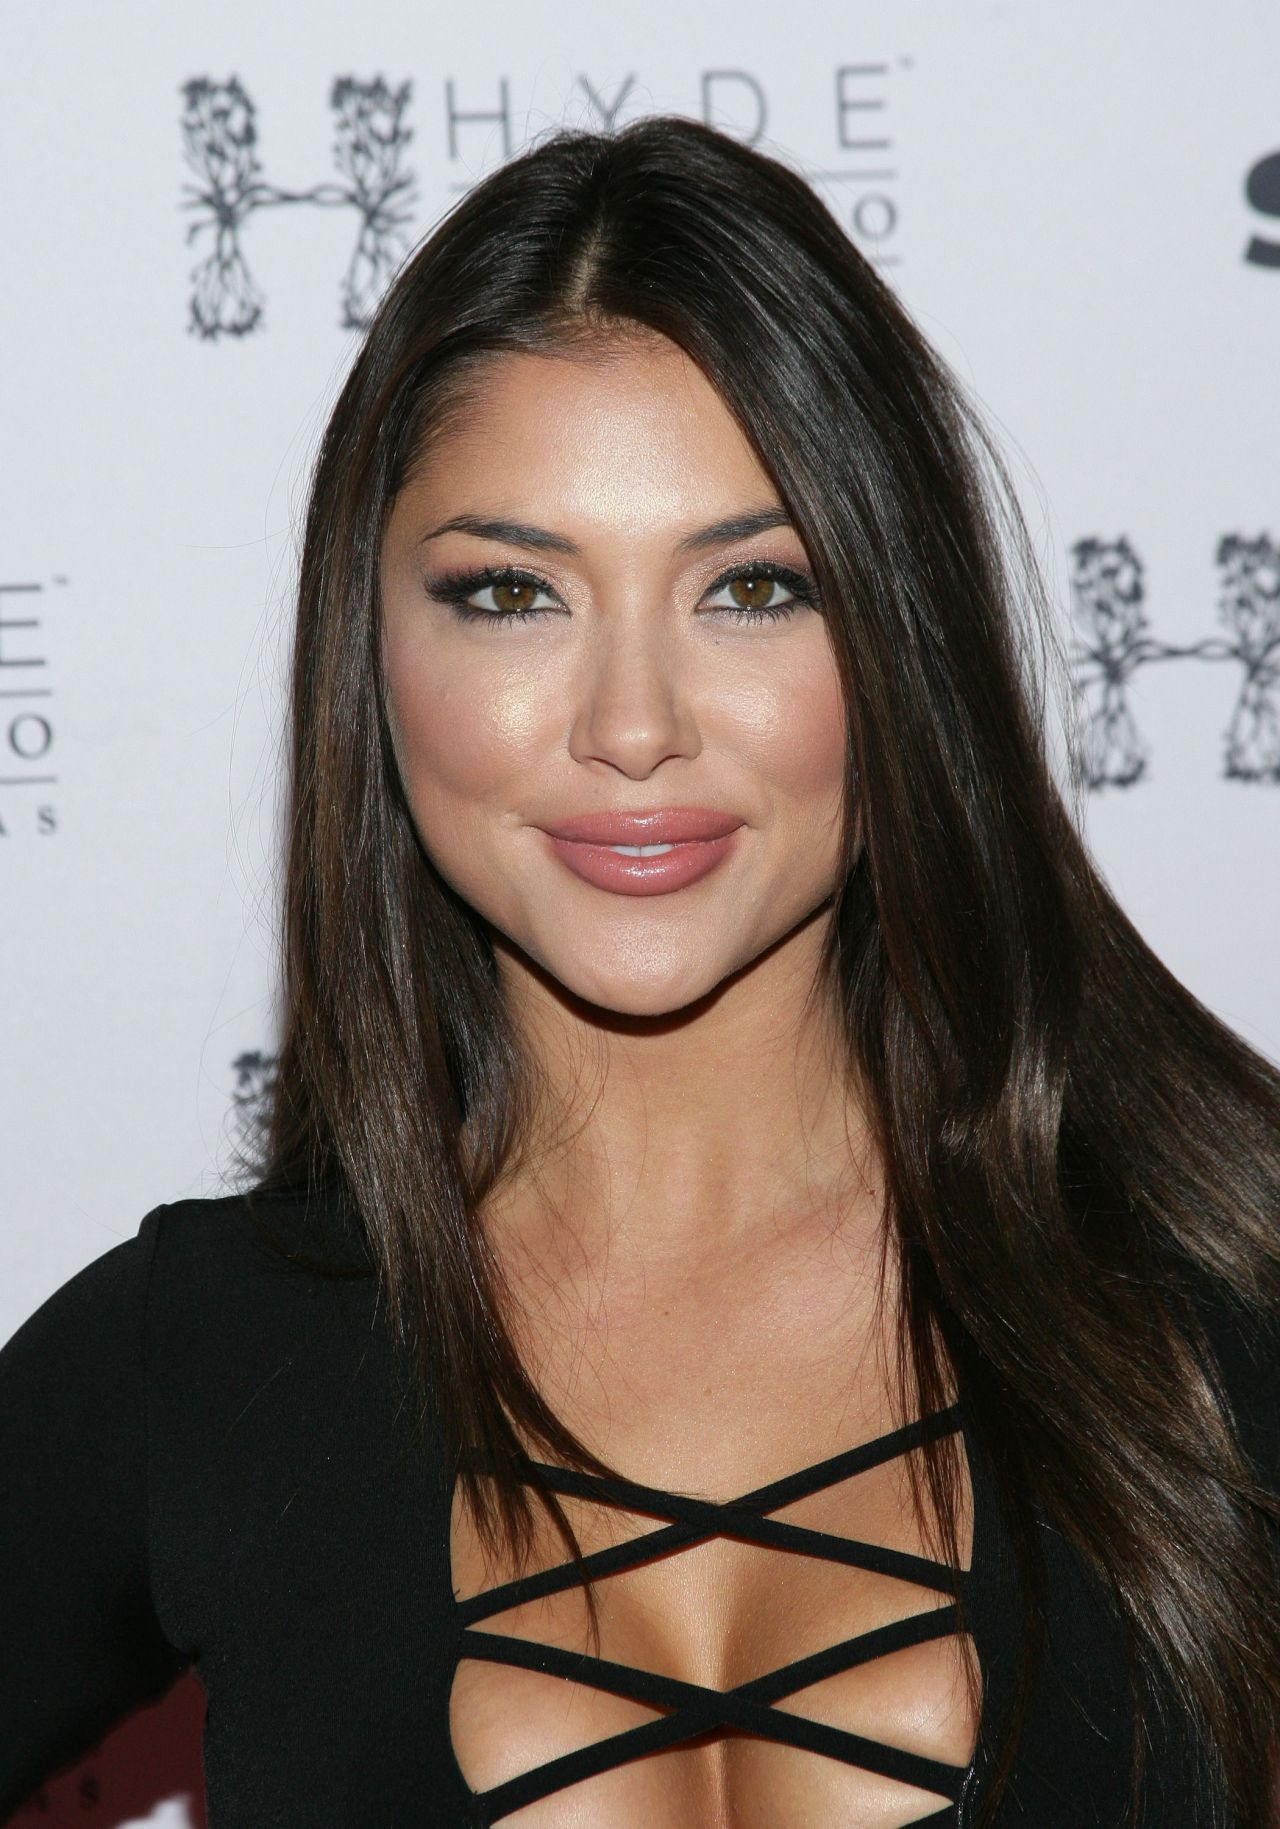 Arianny Celeste Ufc 194 Afterparty In Las Vegas